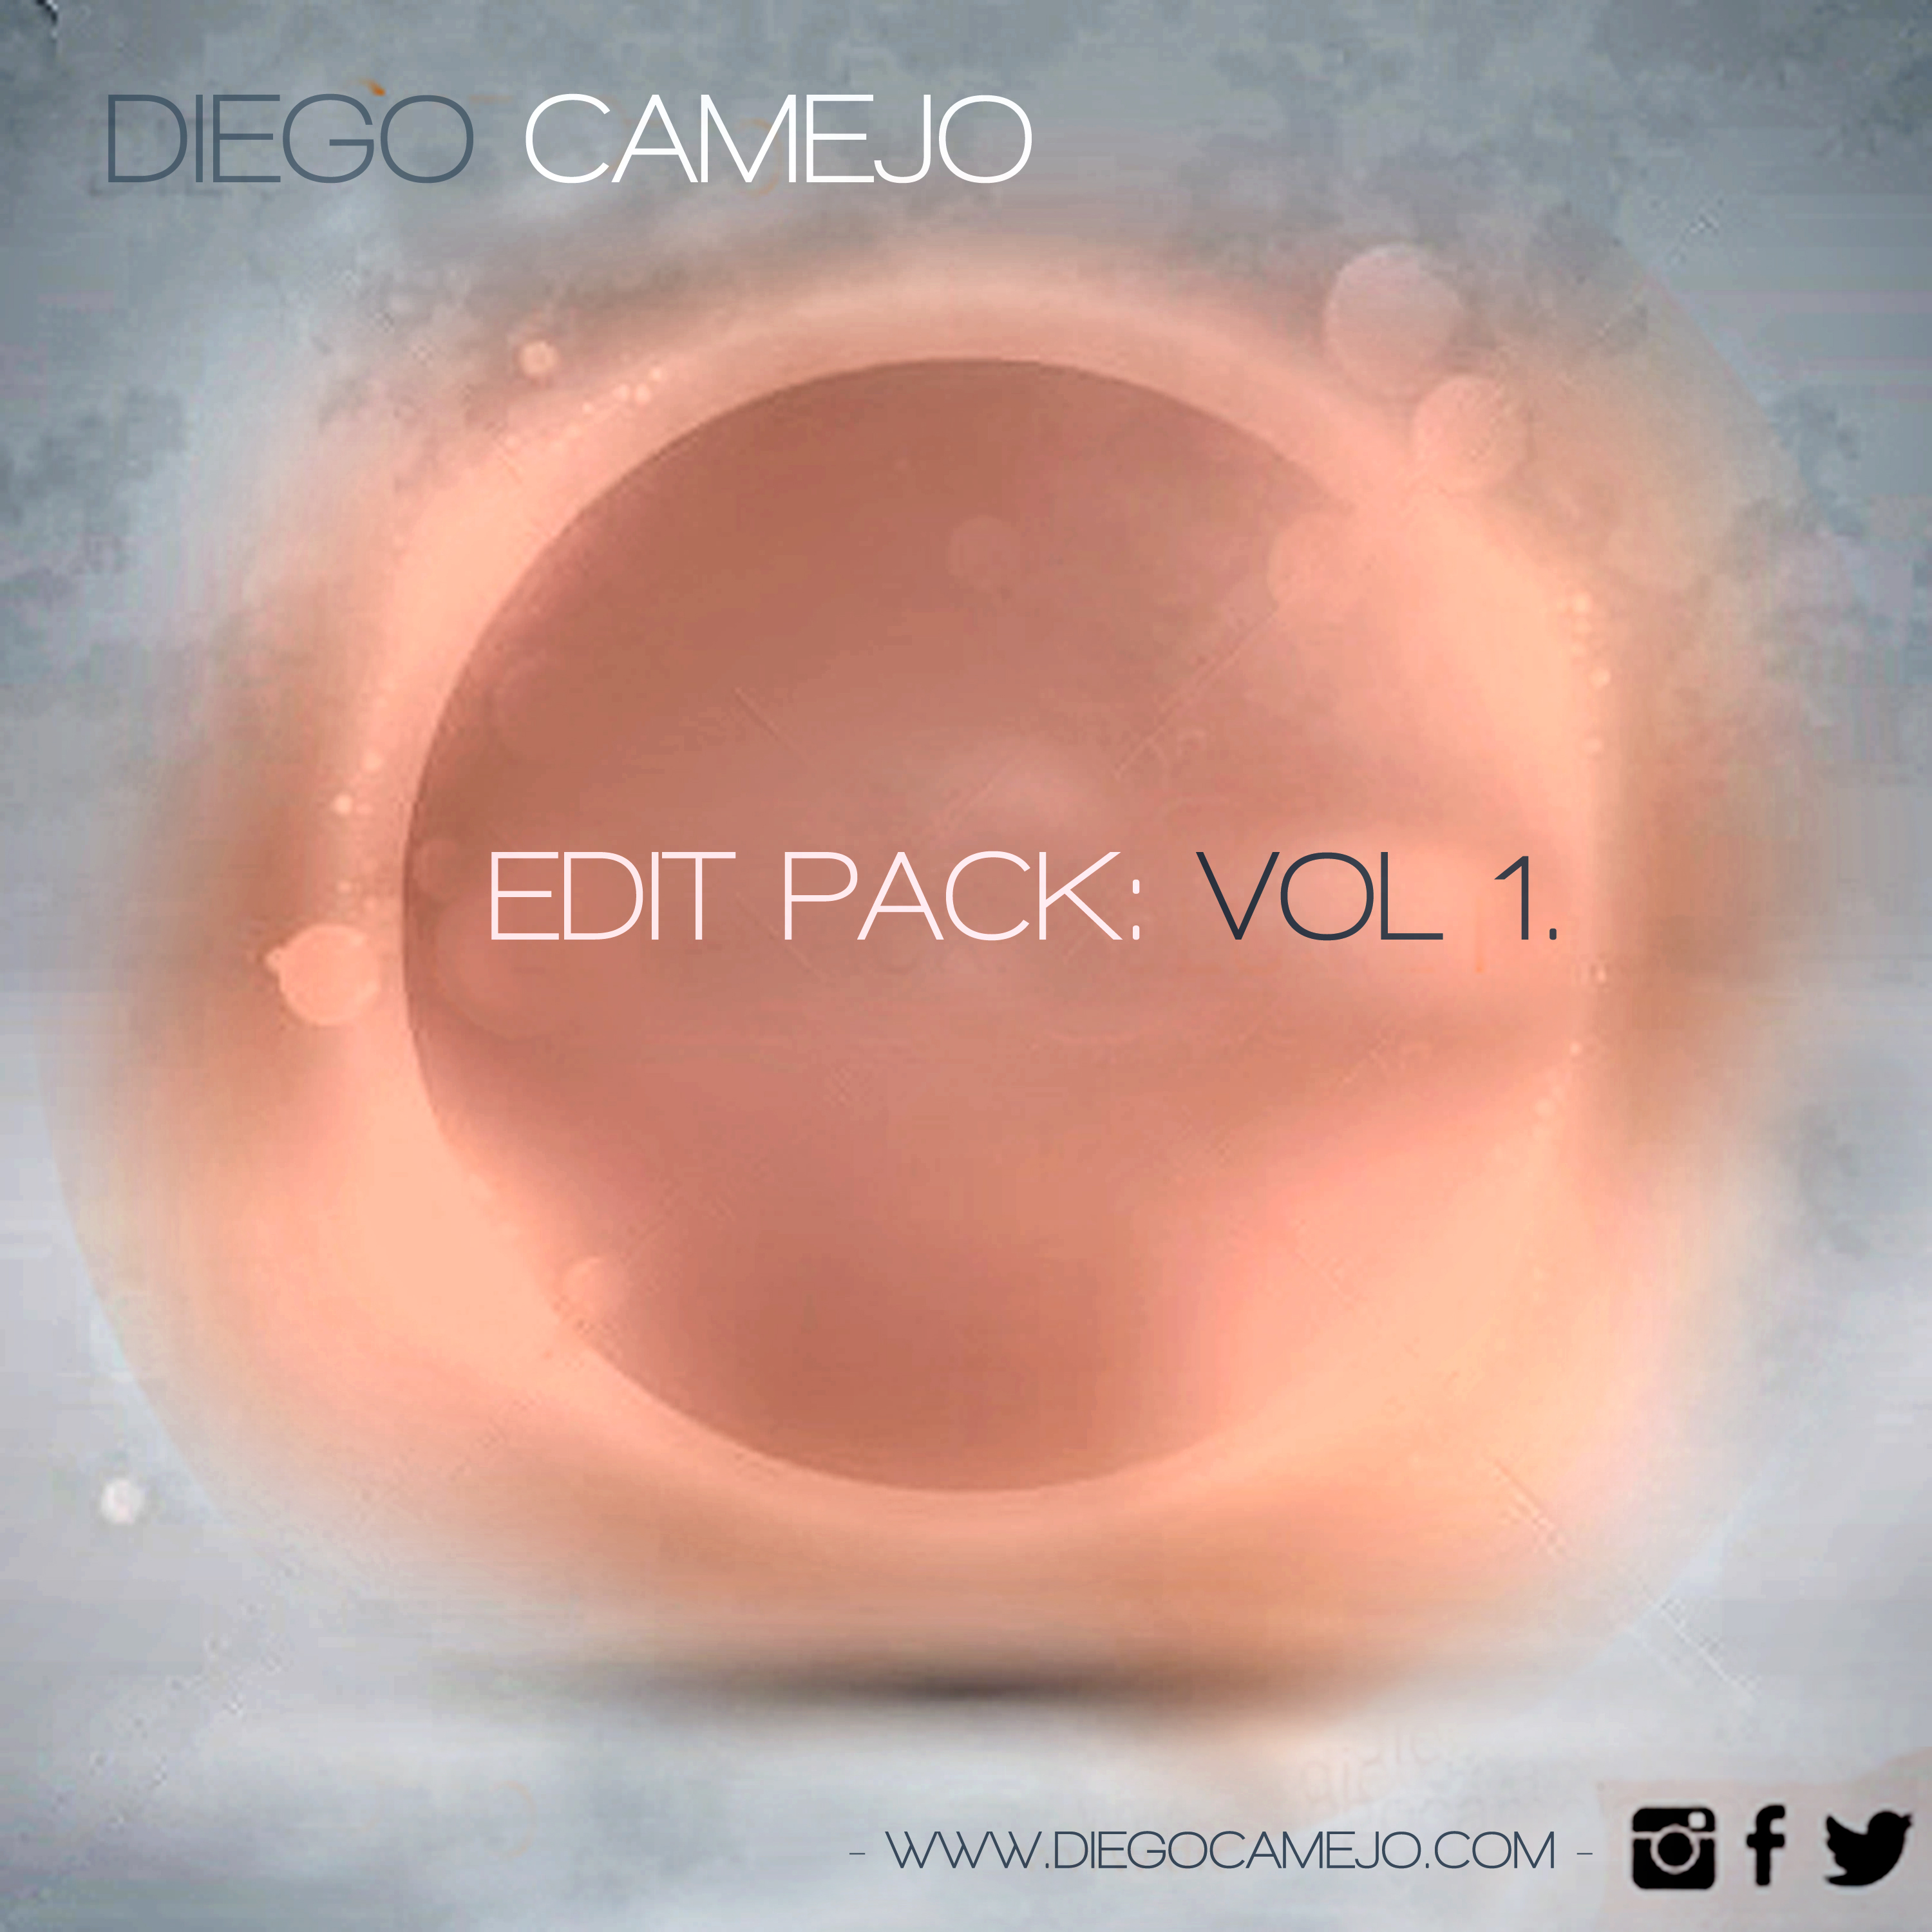 Diego Camejo - Edit Pack: Vol 1